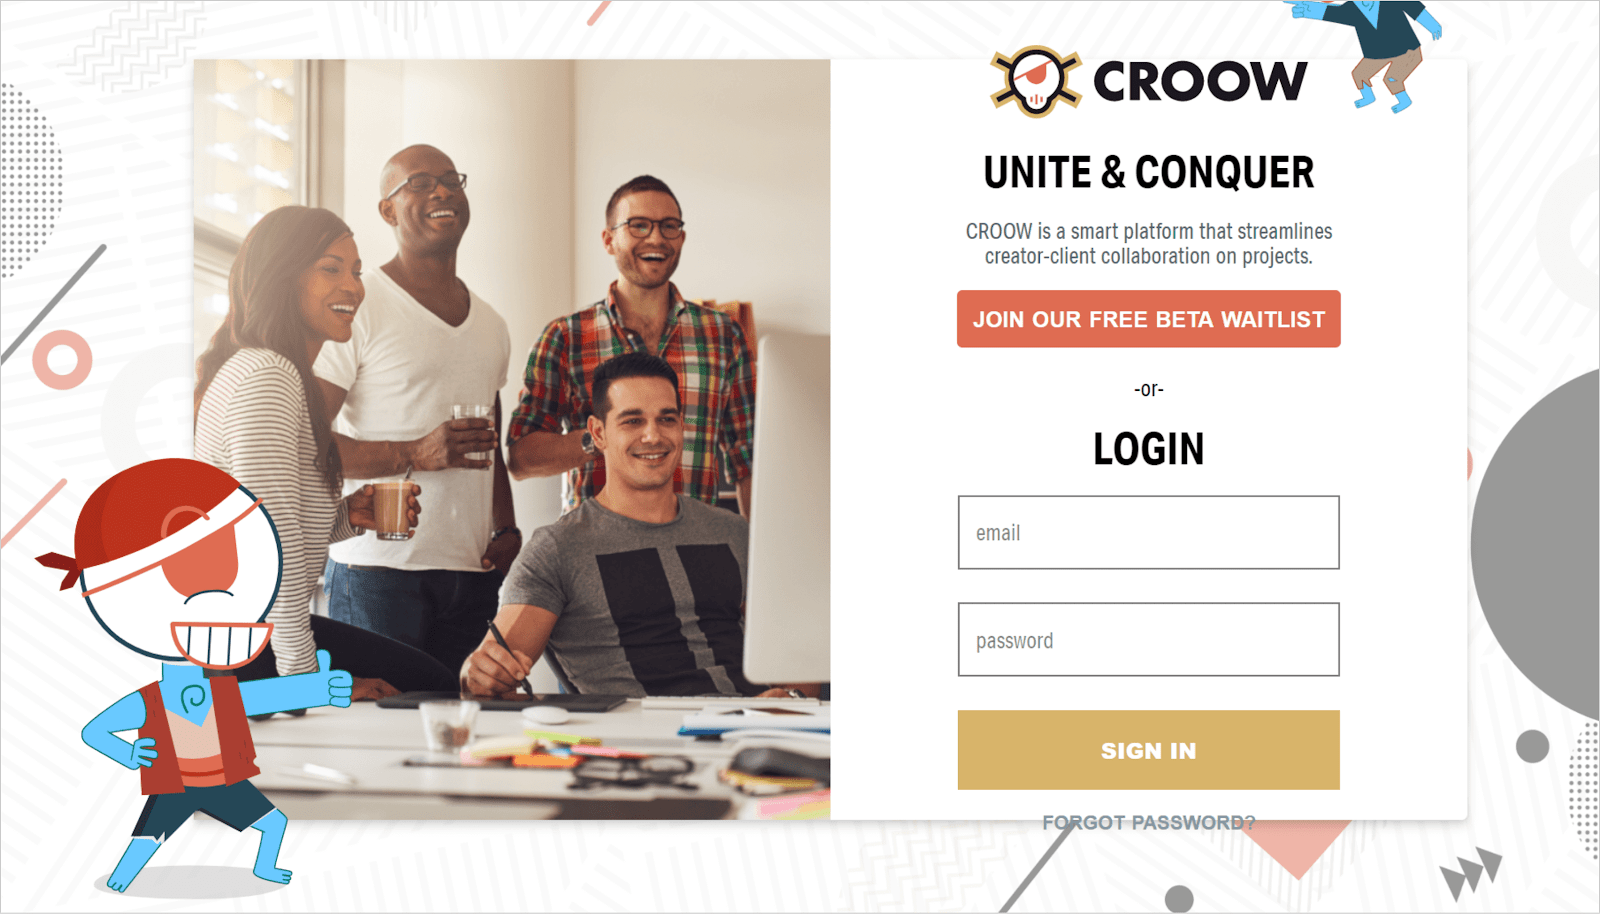 CROOW- a Smart Platform That Streamlines Creator-Client Collaboration